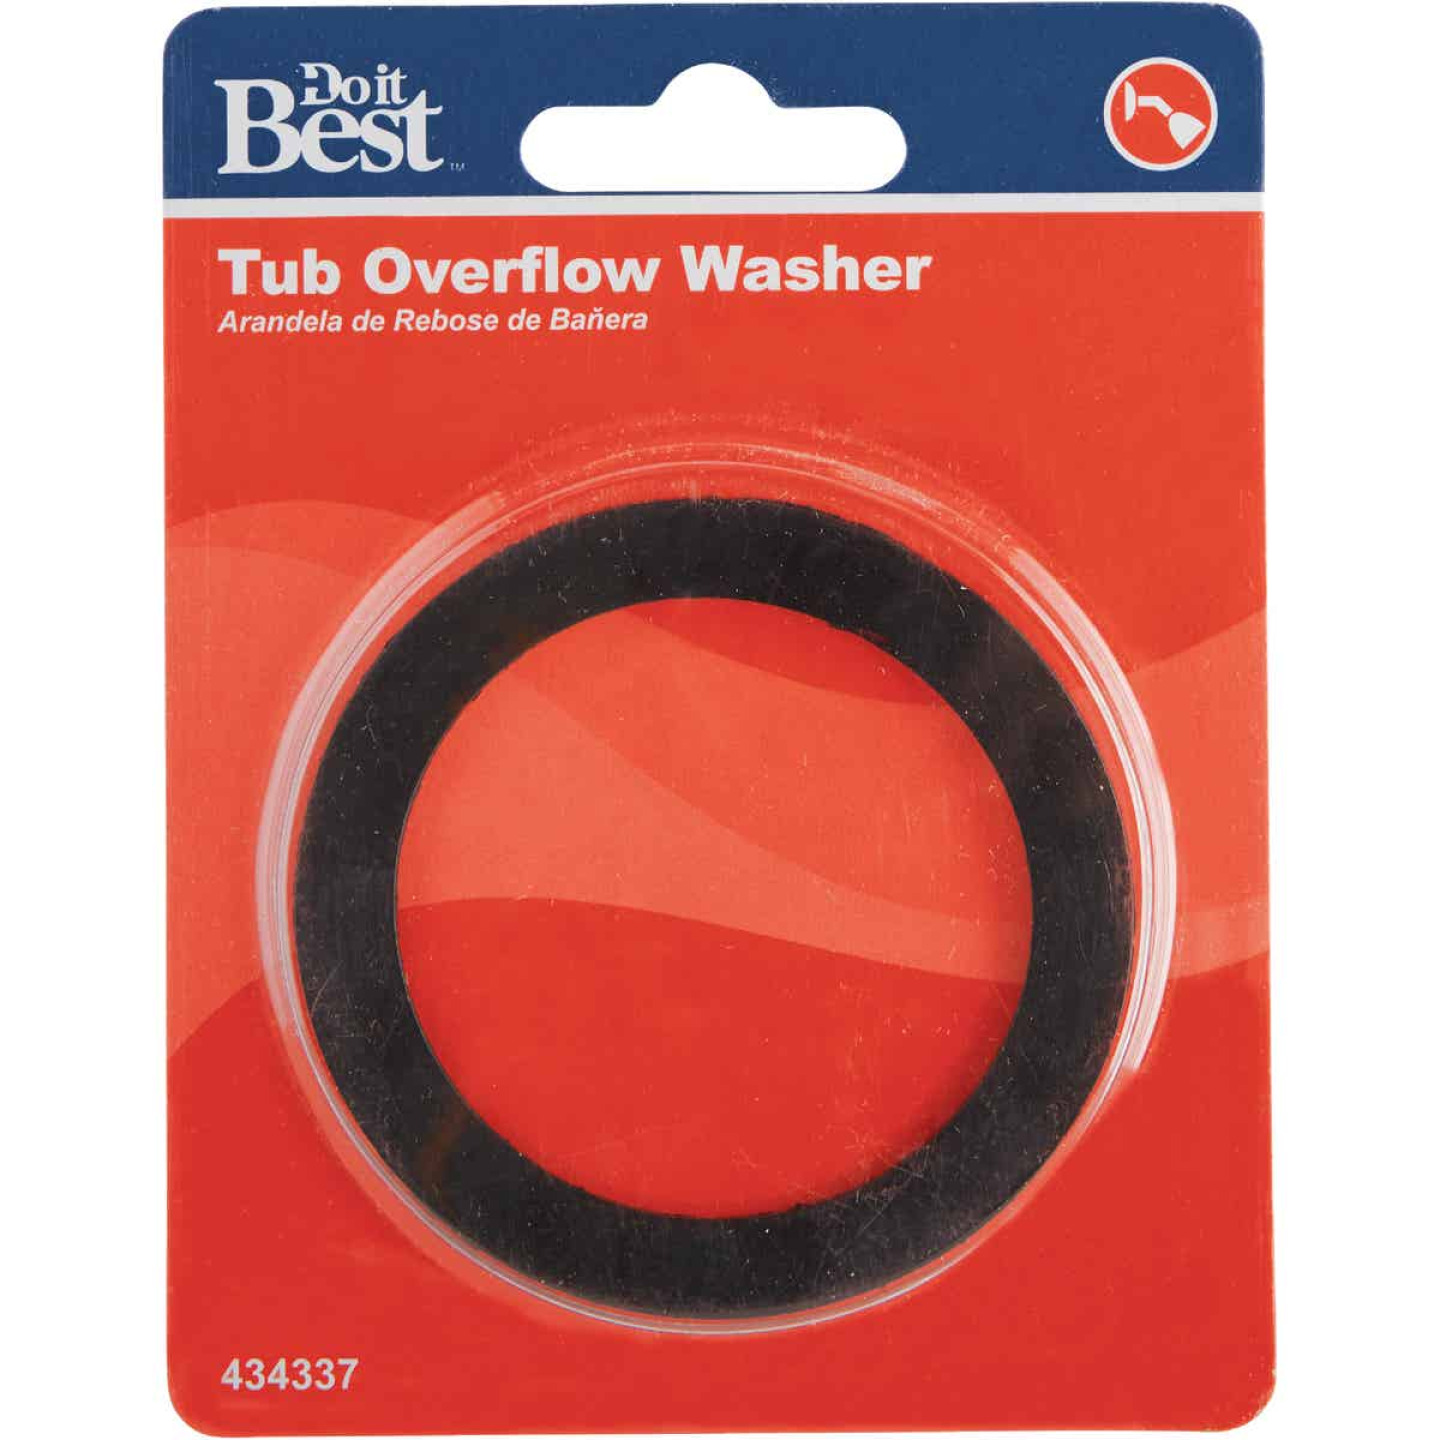 Do it Flat 2-1/8 In. Bath Overflow Washer Image 2